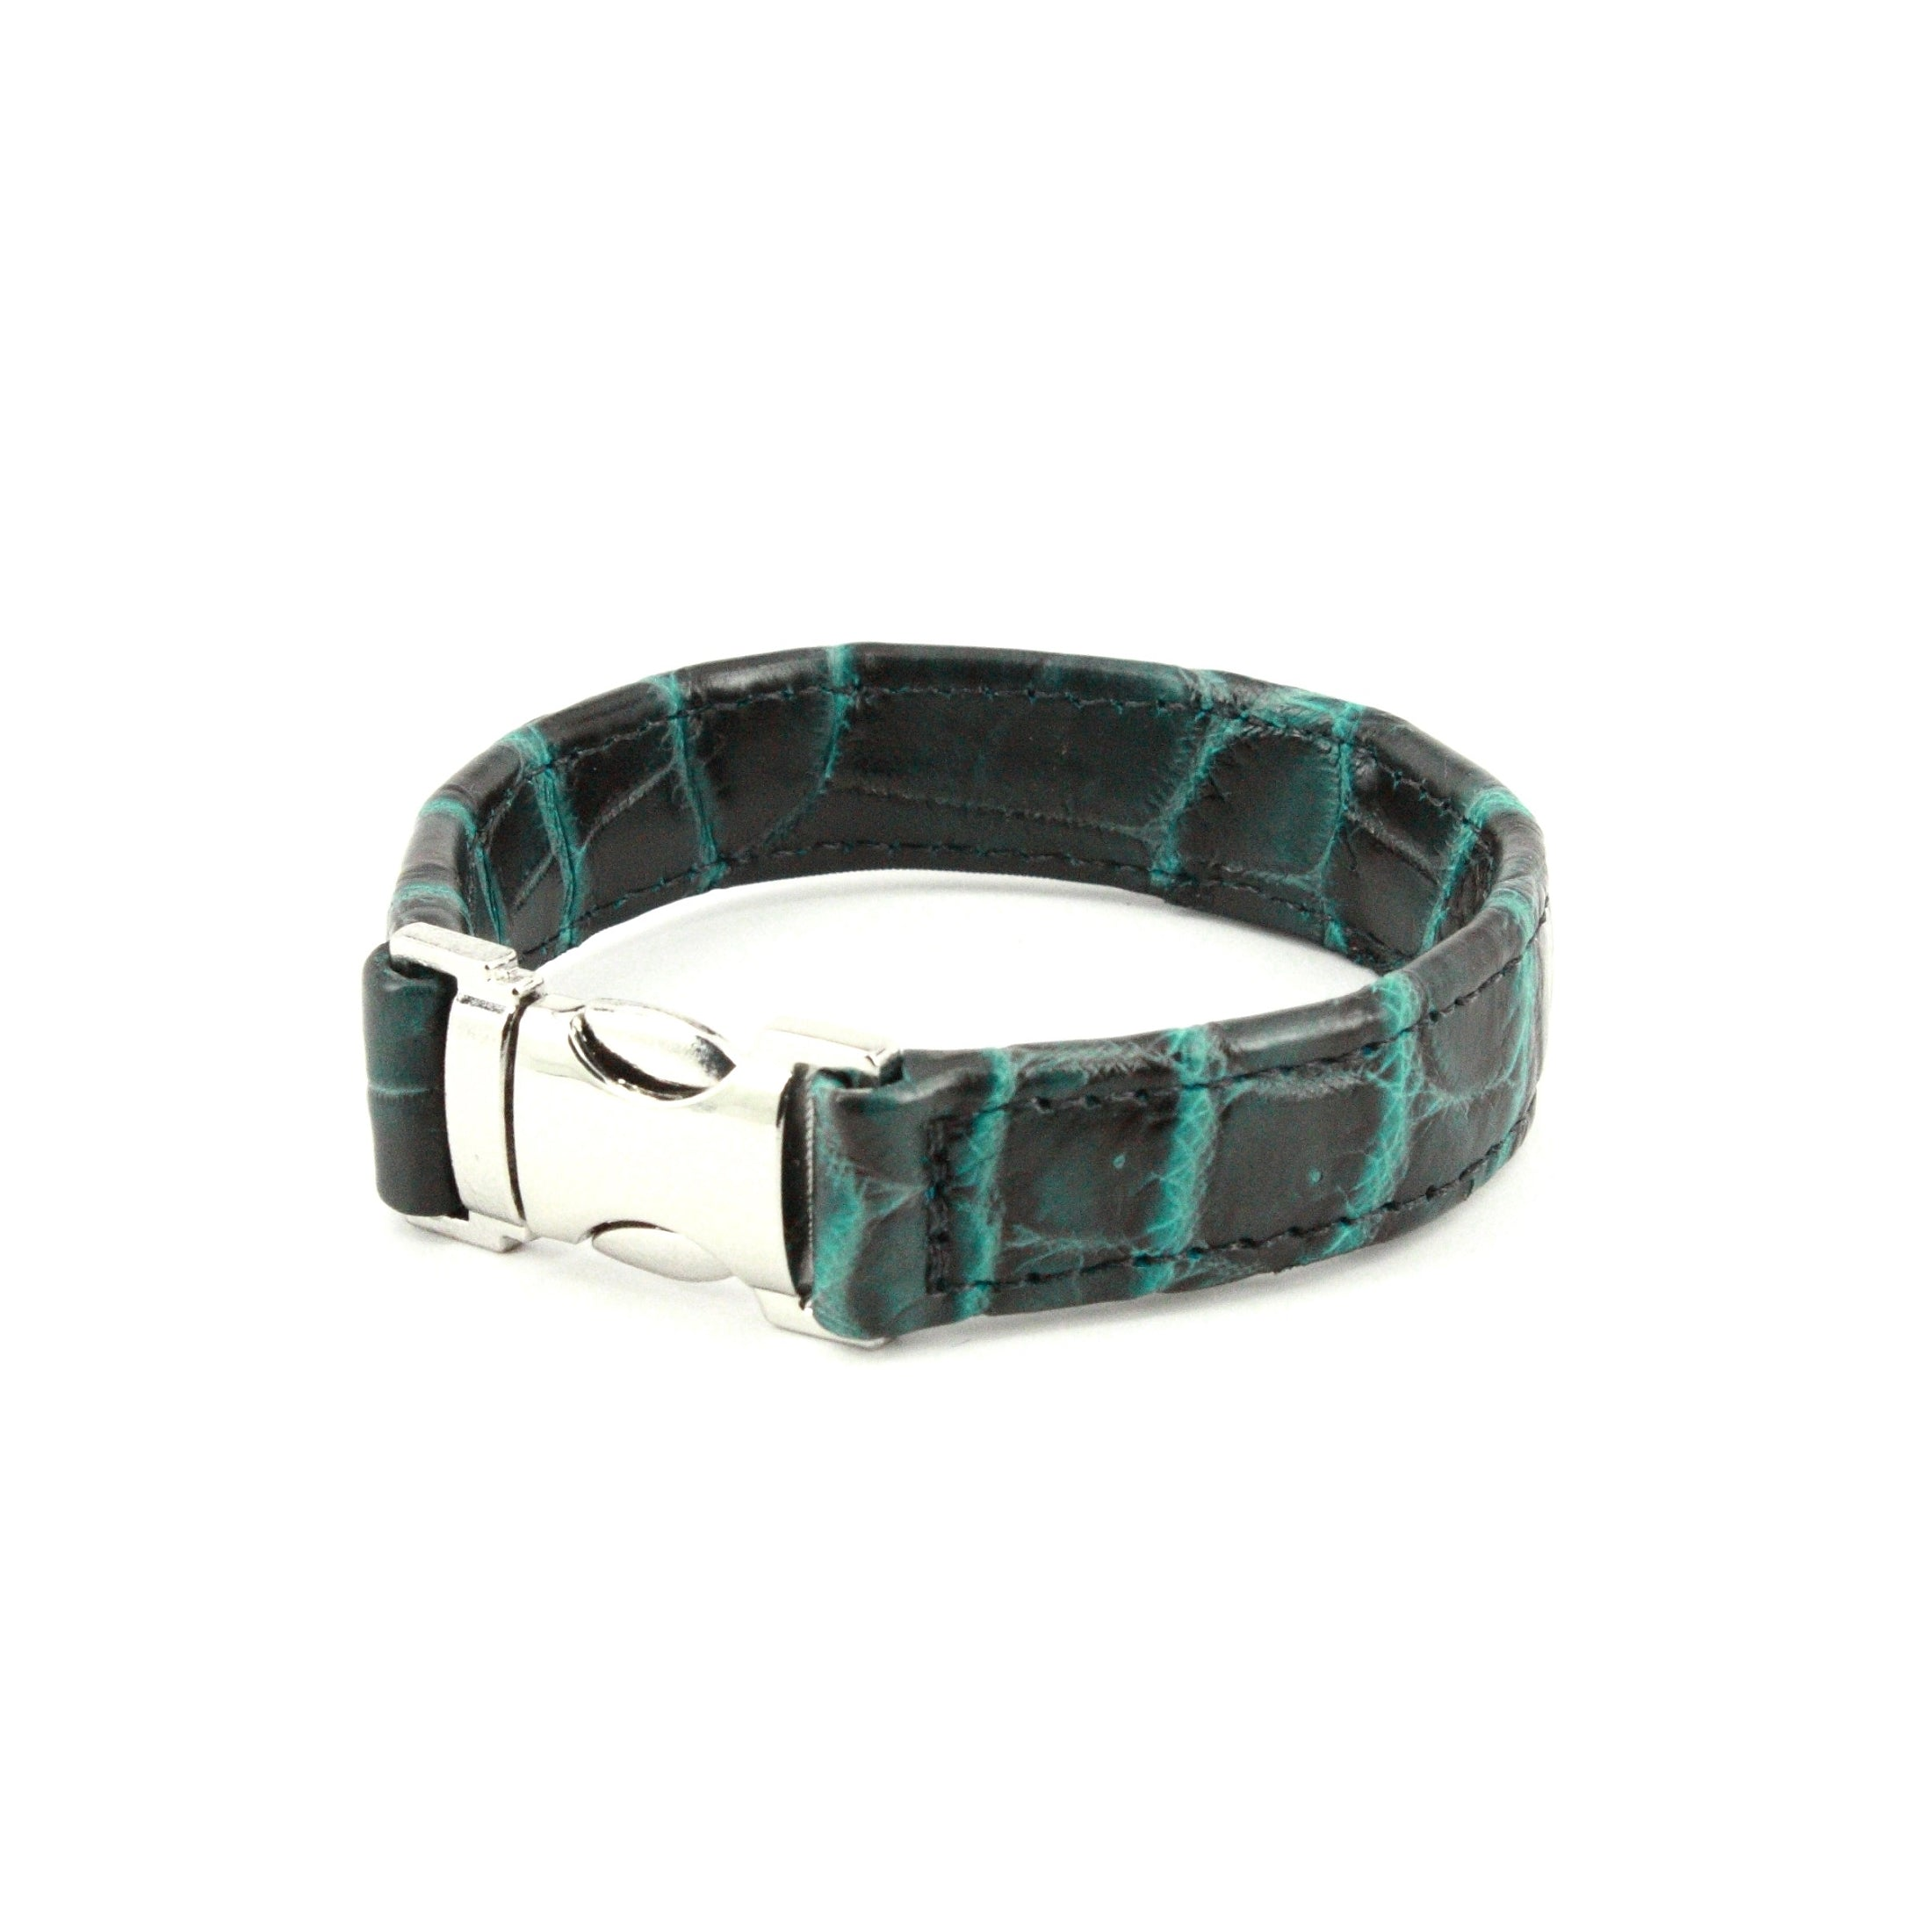 GENUINE NILE CROCODILE CUFF BRACELET - BLACK/TURQUOISE